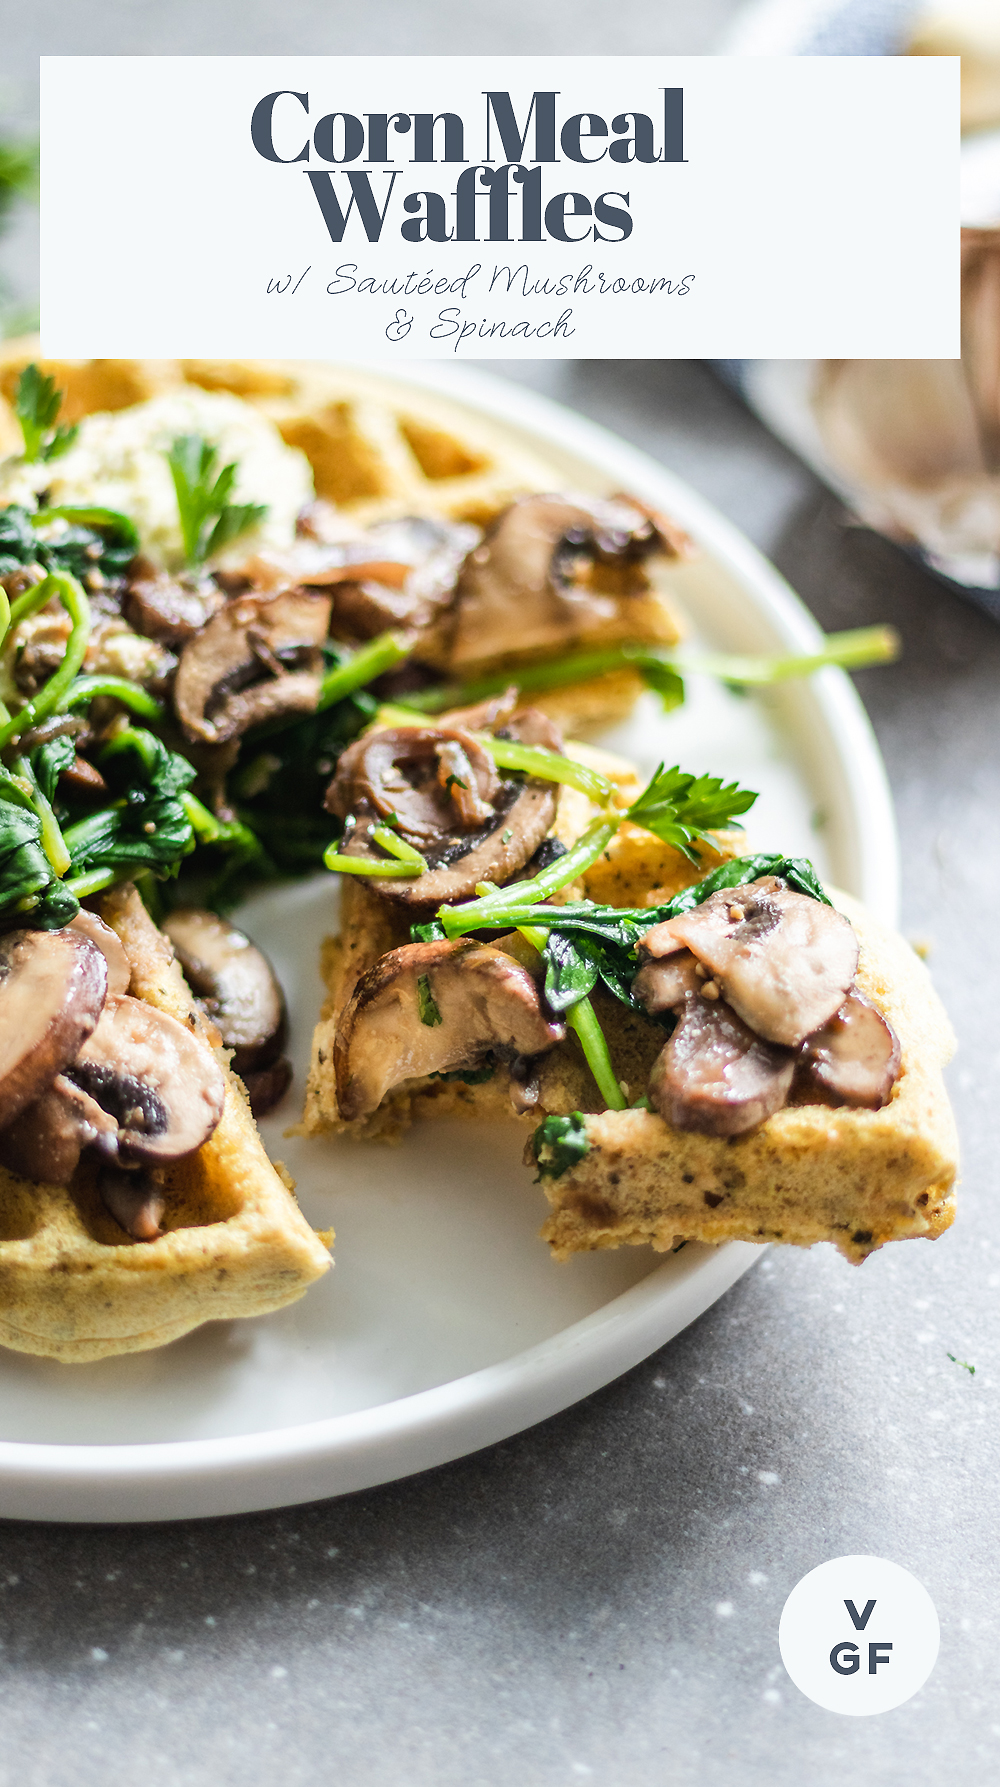 Corn Meal Waffles with Sautéed Cremini Mushrooms and Spinach